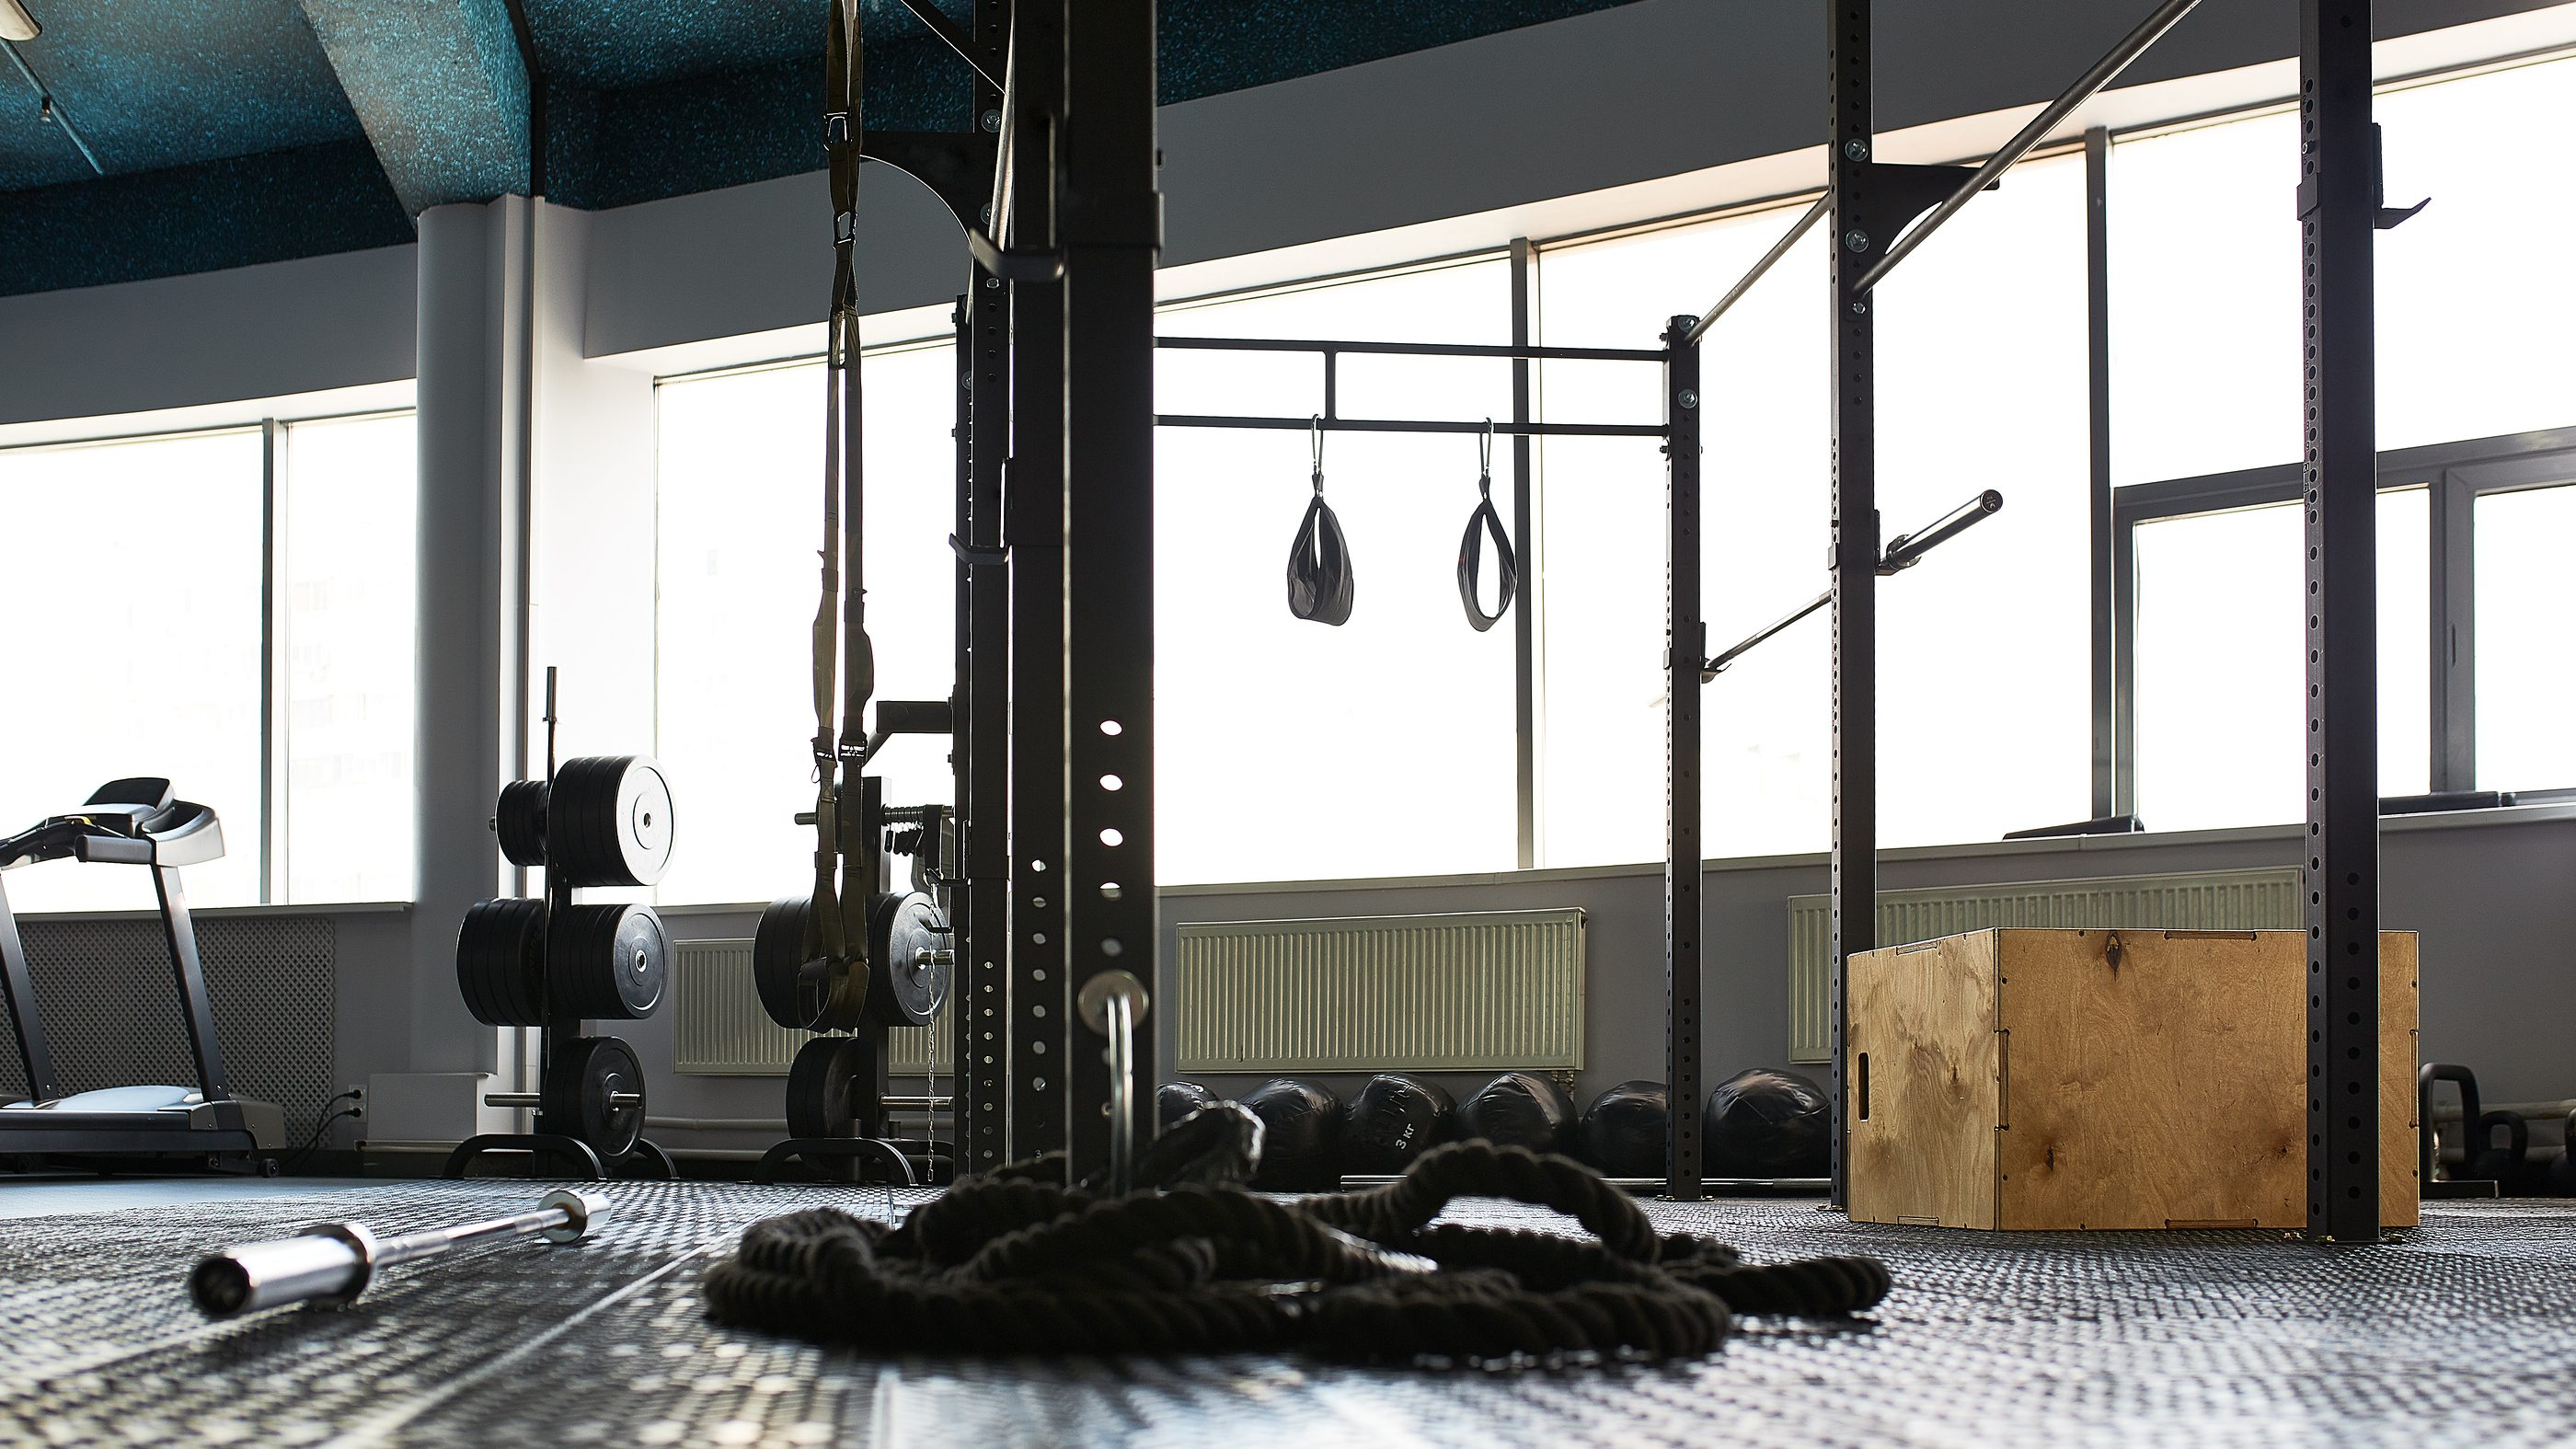 5 places germs can hide in your gym